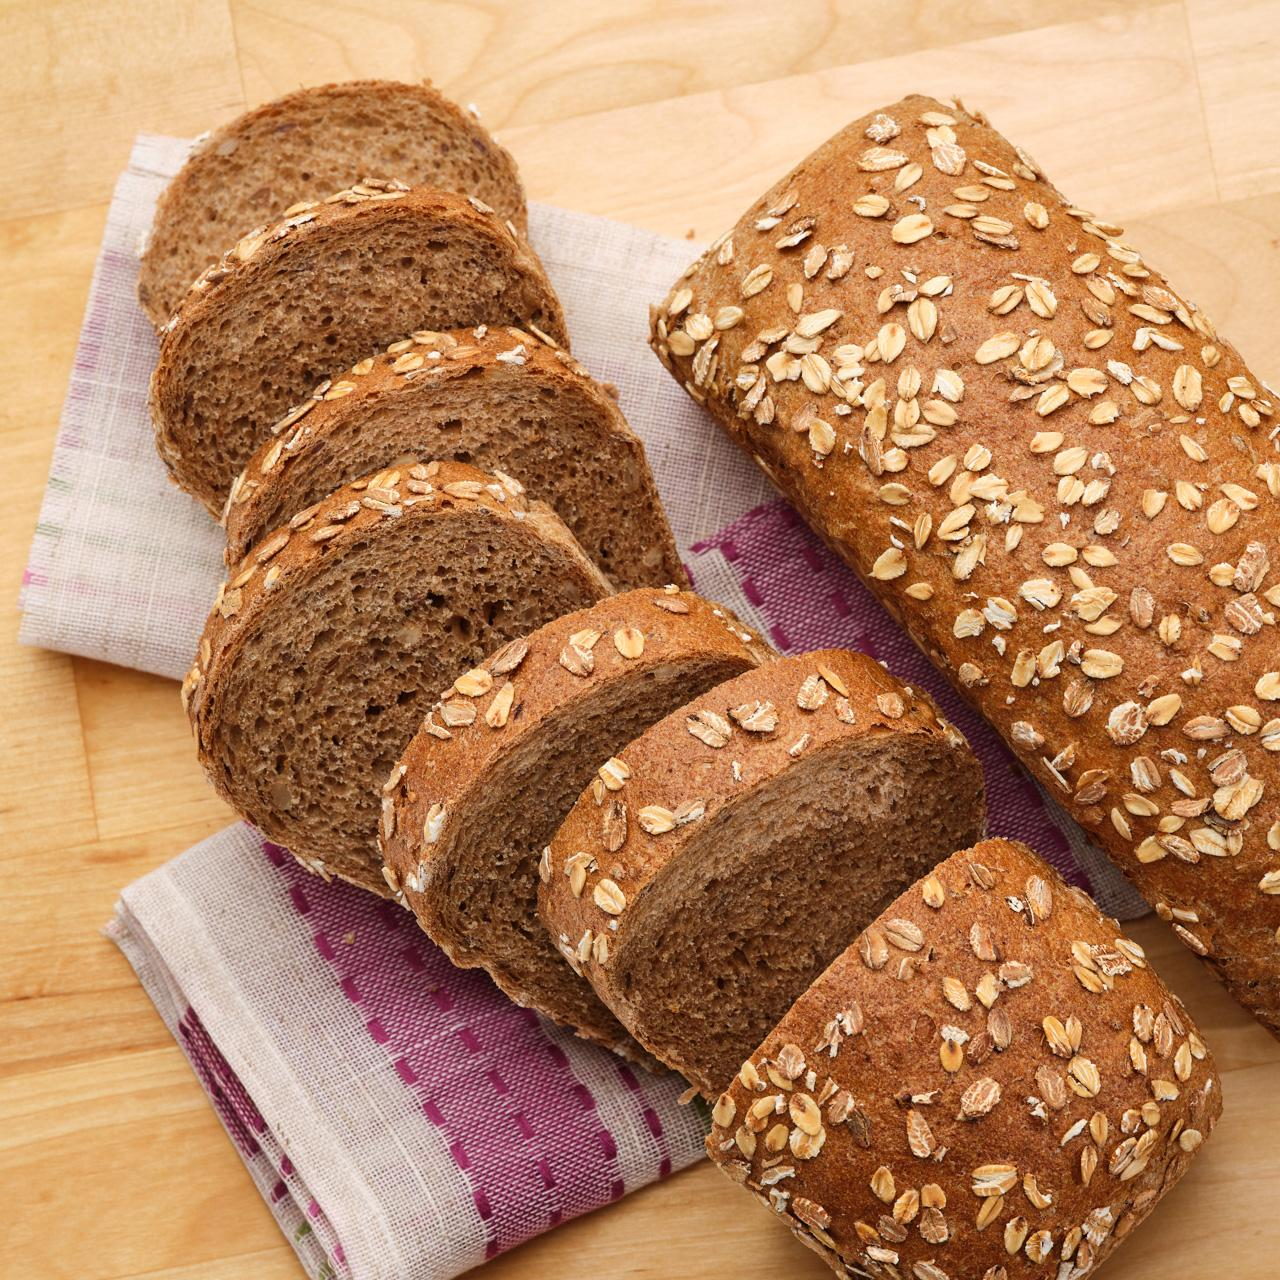 Bread with spelt